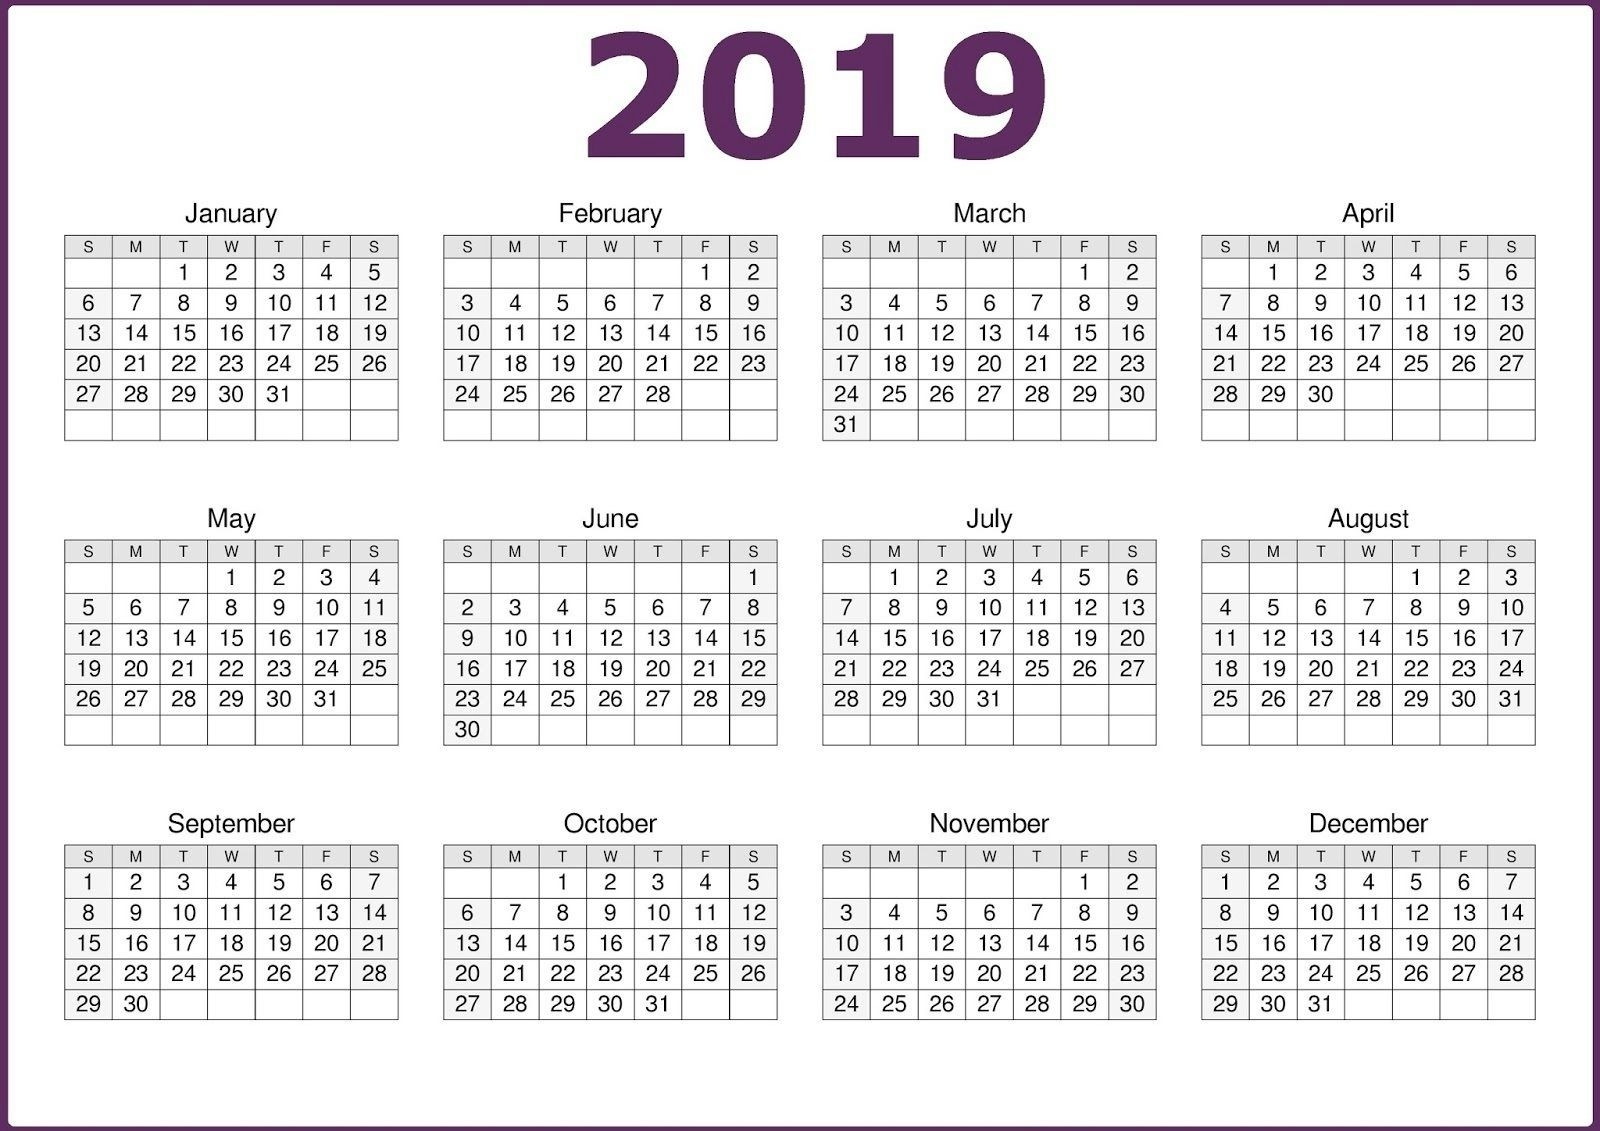 2019 Business Calendar Template With Holidays (With Images  3 Month On One Page